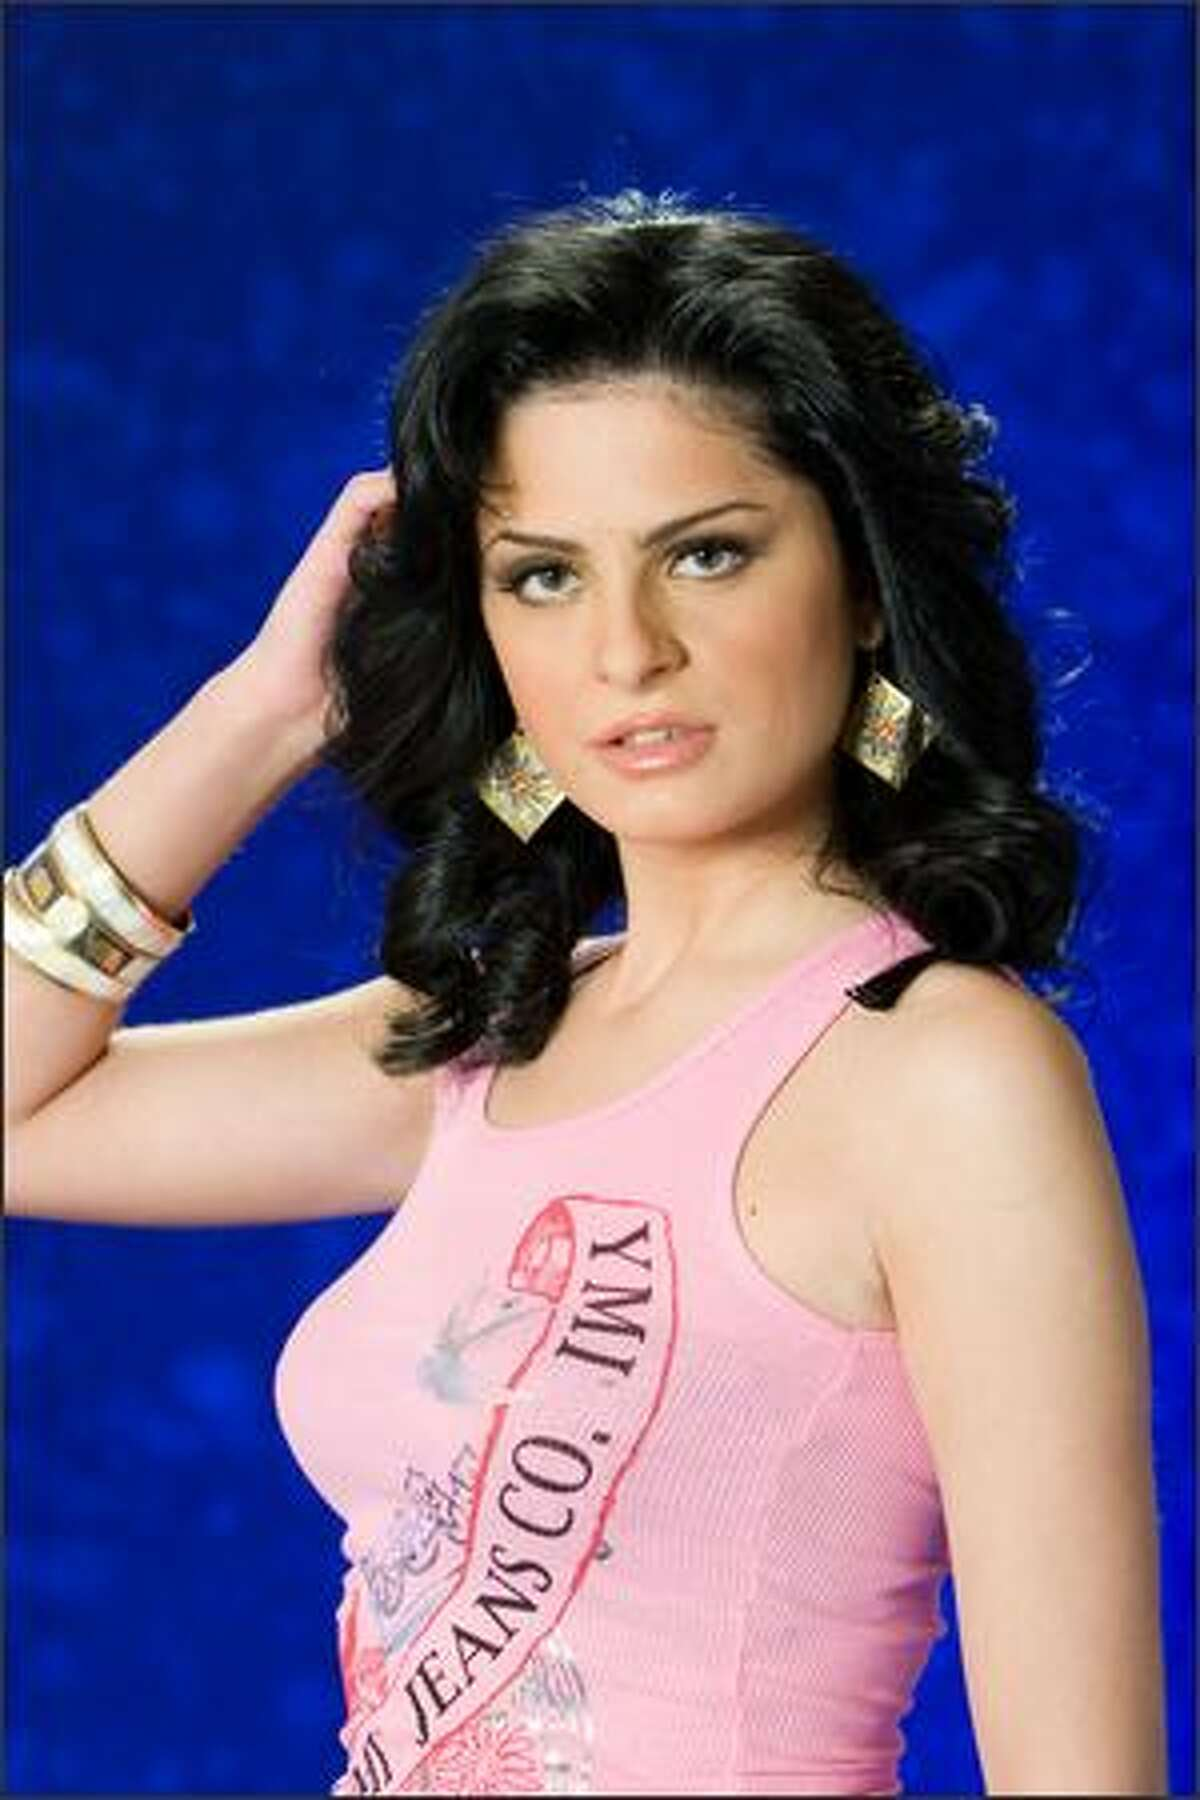 Ana Giorgelashvili, Miss Georgia 2007, poses in her YMI Jeanswear at the Camino Real Mexico in Mexico City on May 4. She will compete for the title of Miss Universe 2007 during the NBC broadcast of the 56th annual Miss Universe competition from Mexico City on May 28.